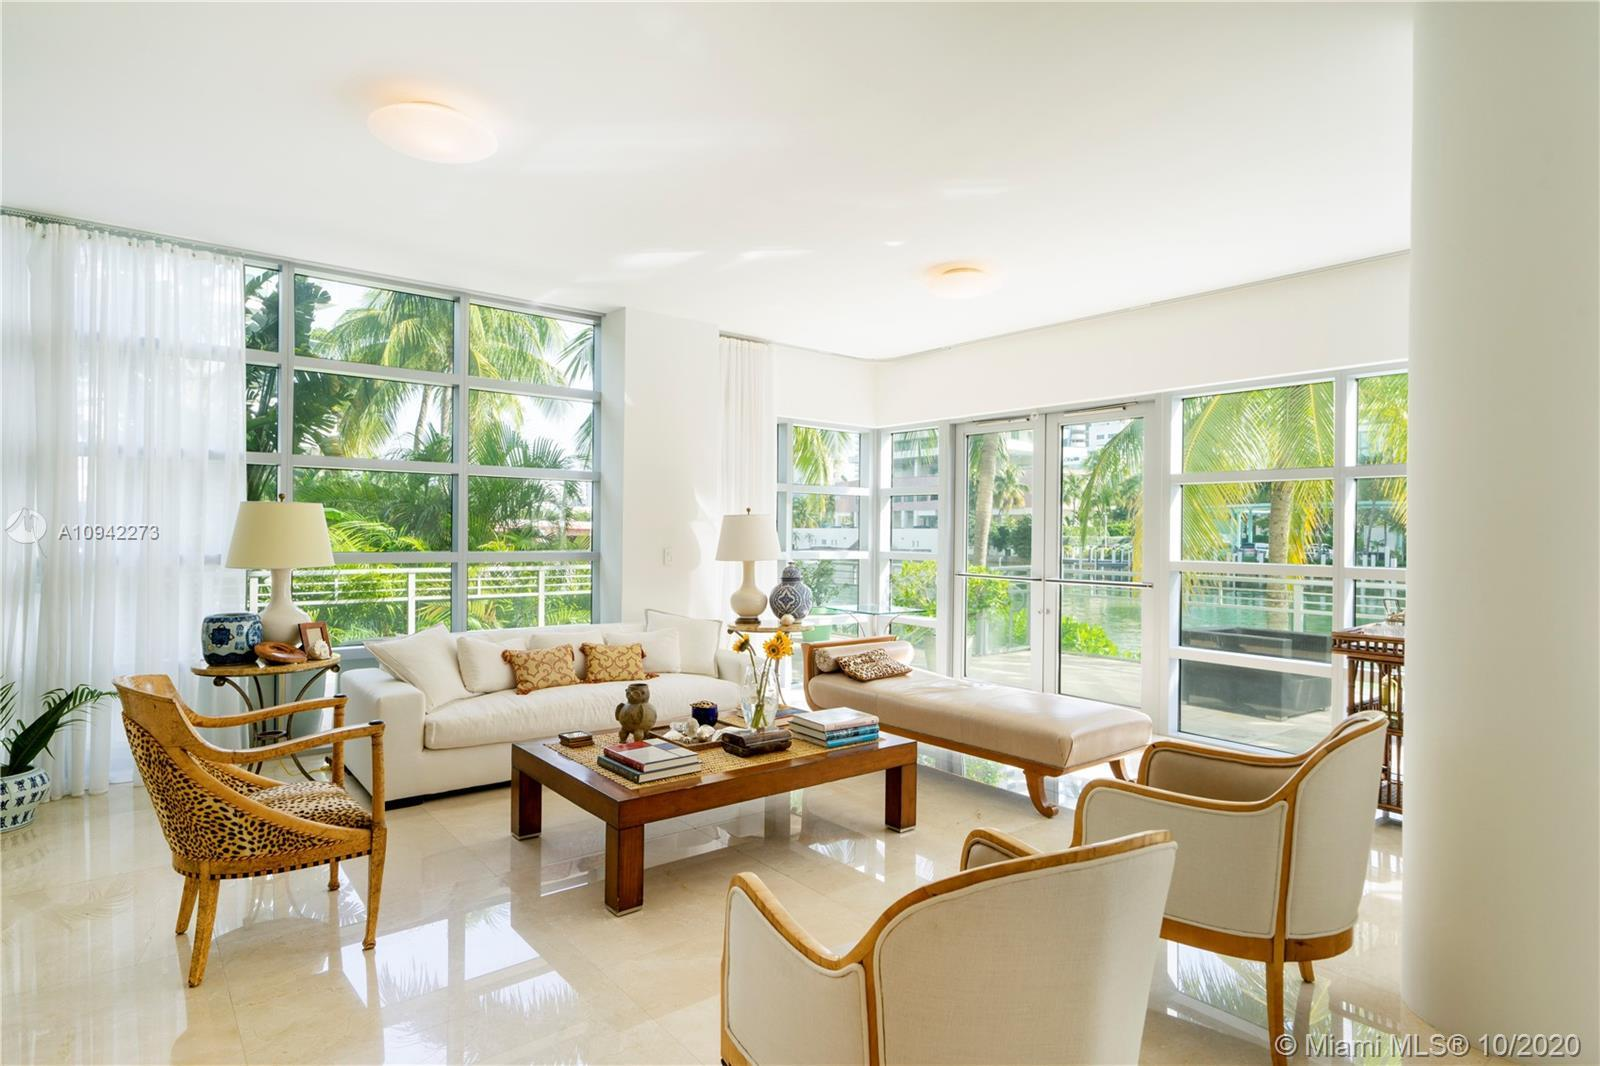 Gorgeous & chic 3bd, 3.5ba corner waterfront lanai in the premier Gorlin Building @ Aqua. Open 2,348